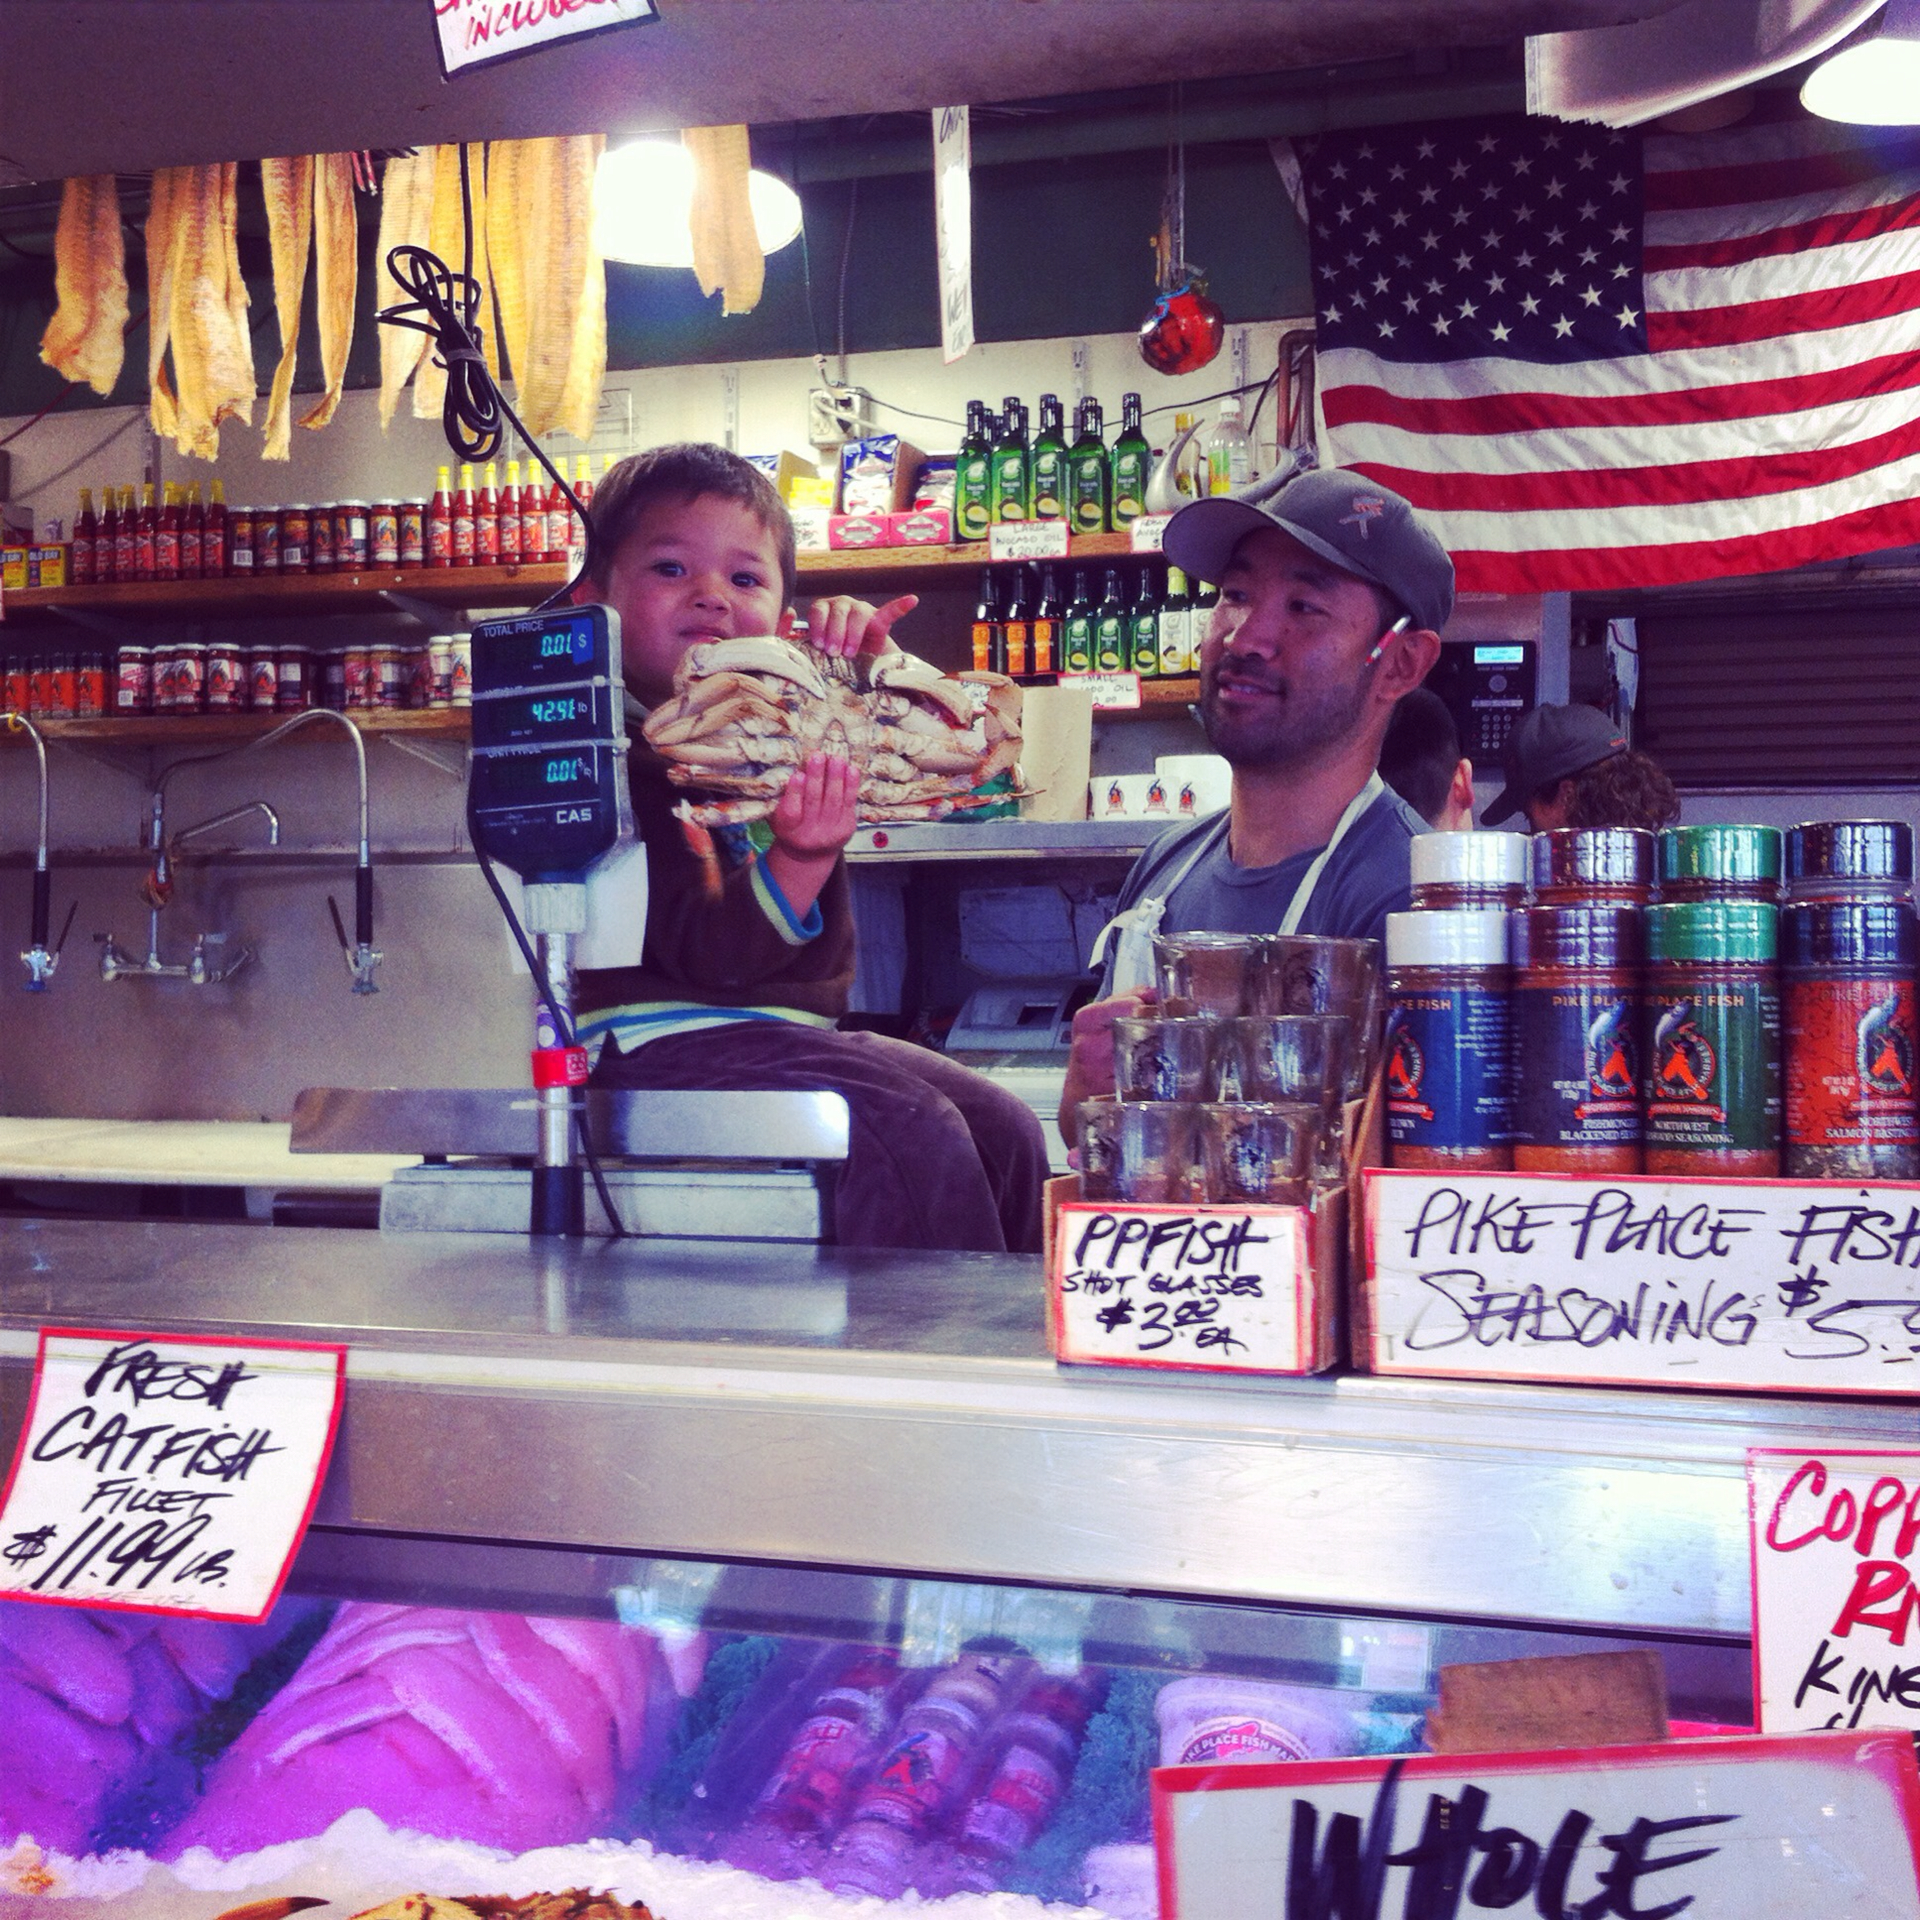 The guys at Pike Place Fish give kids the ultimate experience